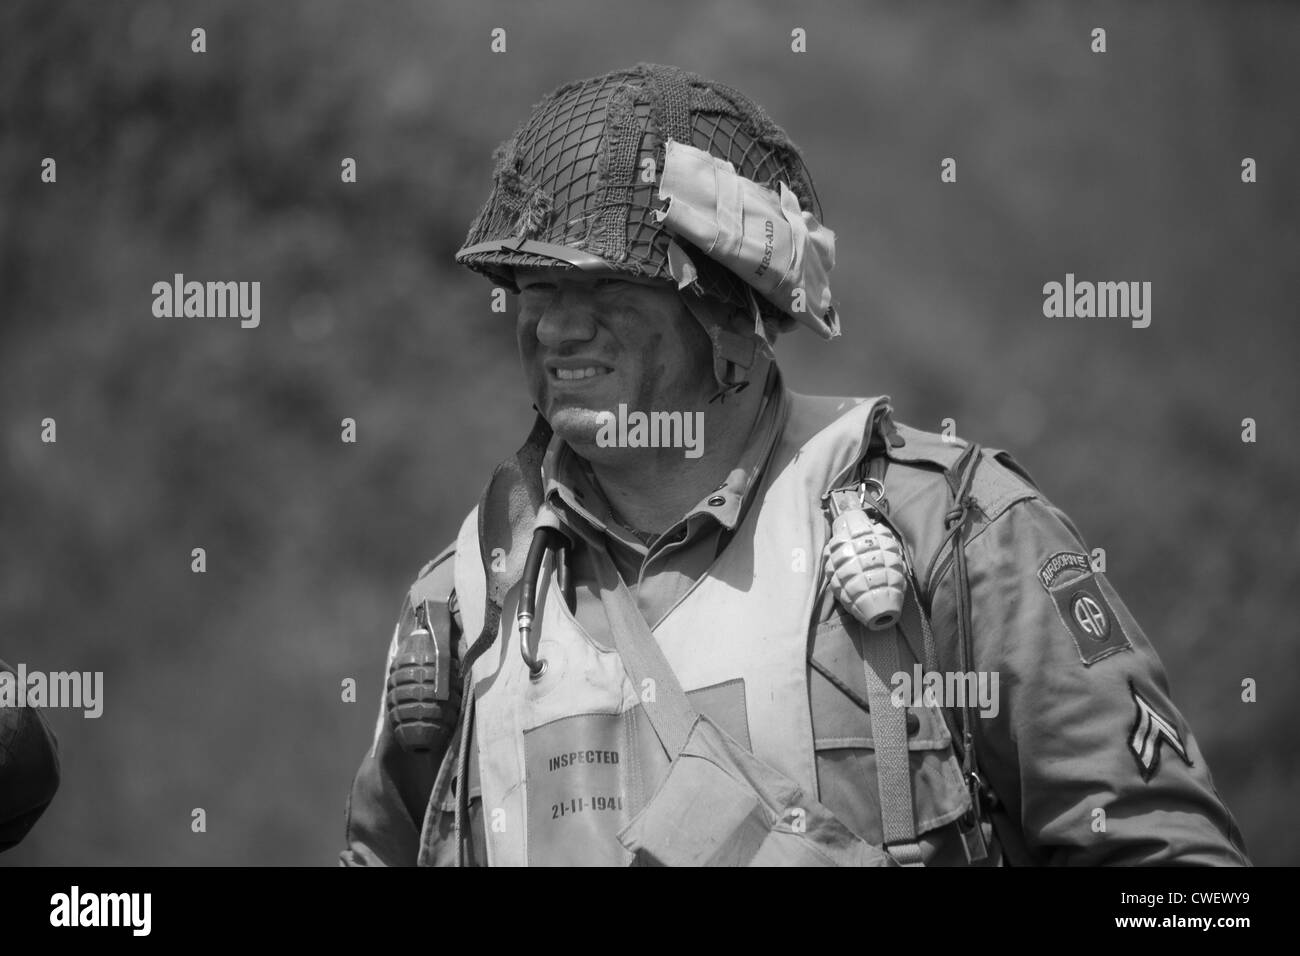 US Army Soldier - Stock Image